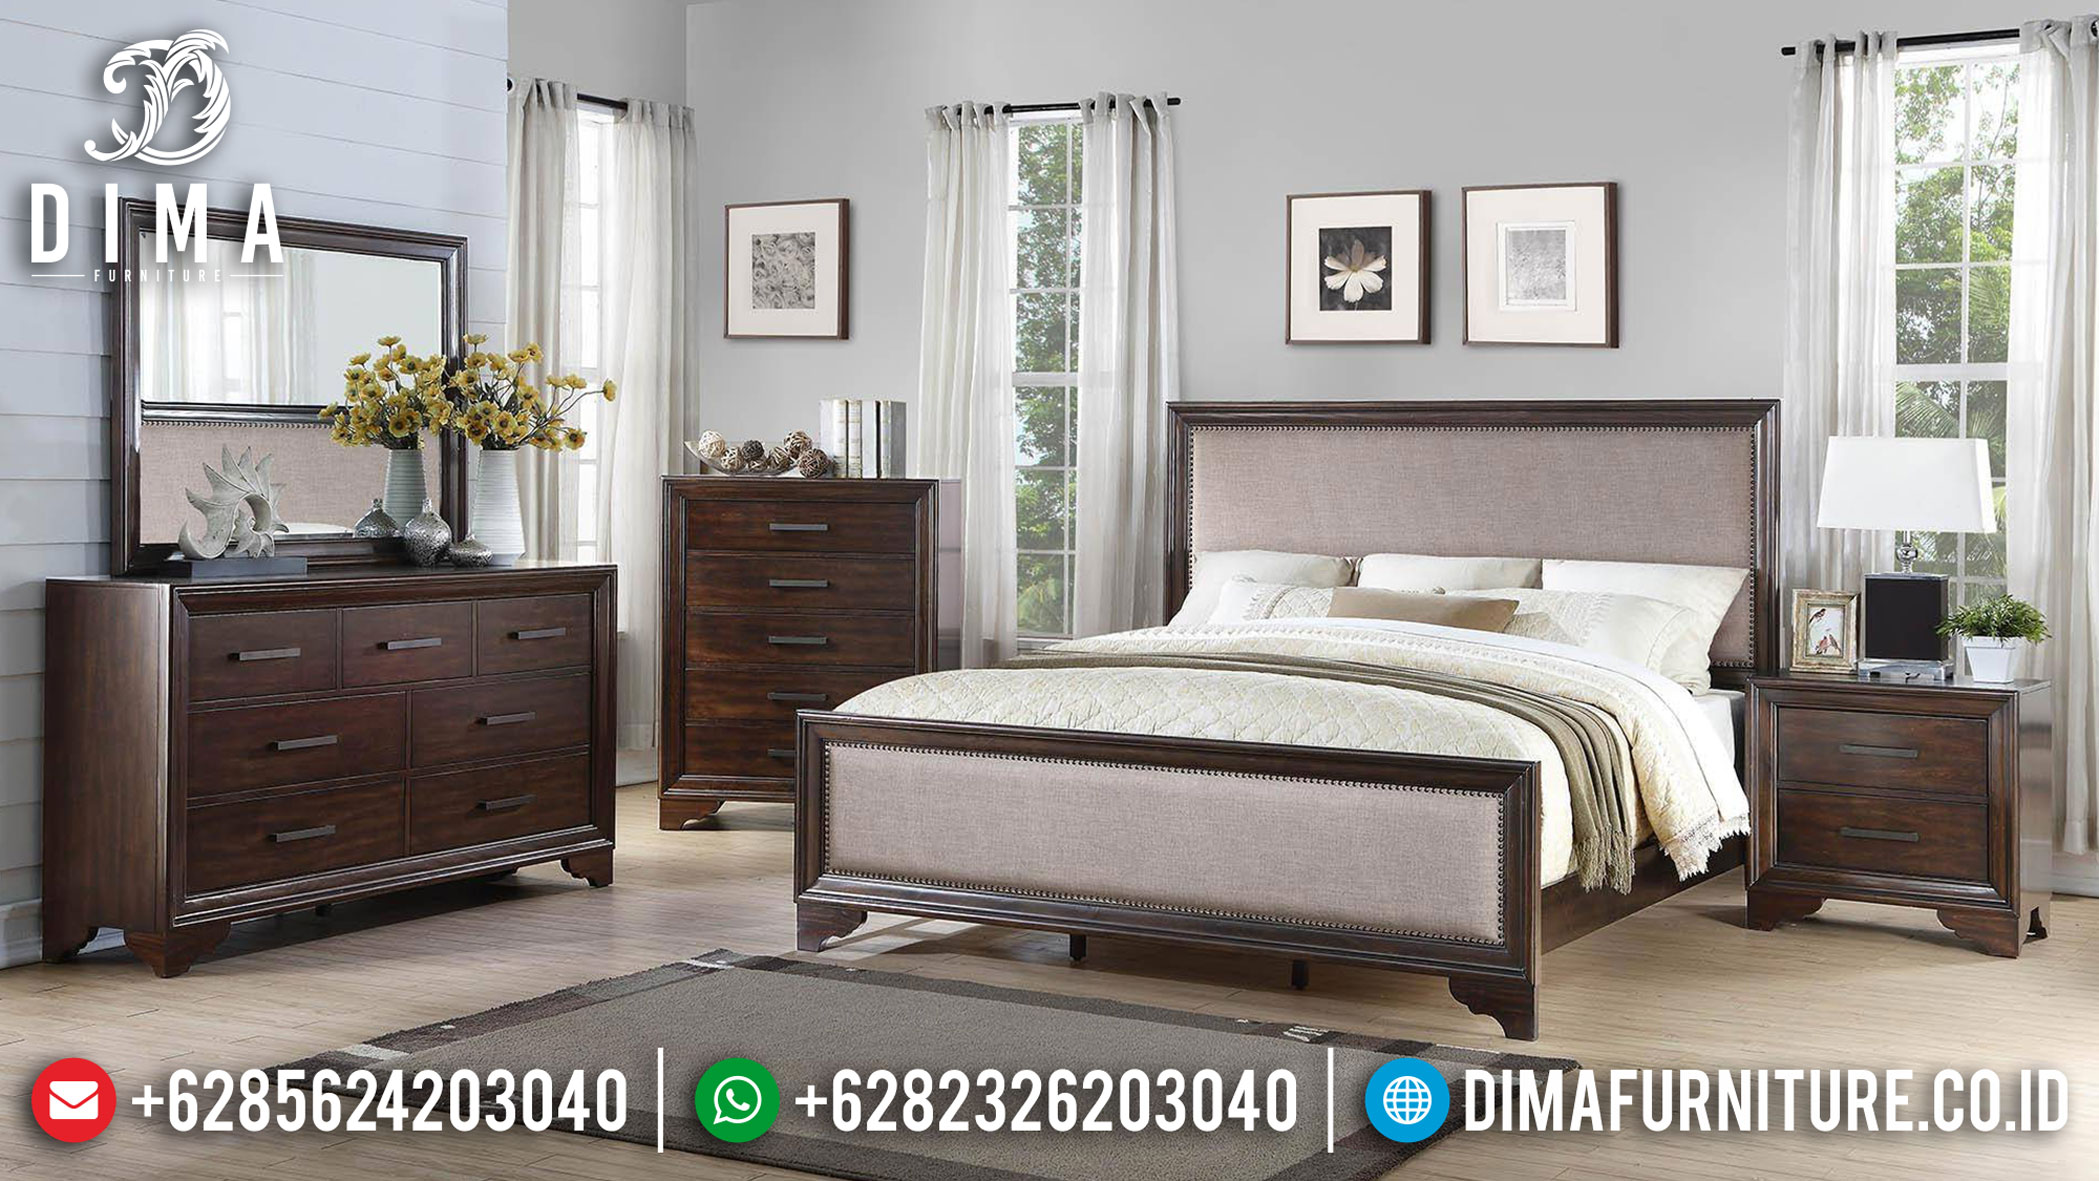 New Dipan Kayu Jati Kamar Set Minimalis Natural Dark Salak Furnishing TTJ-1113